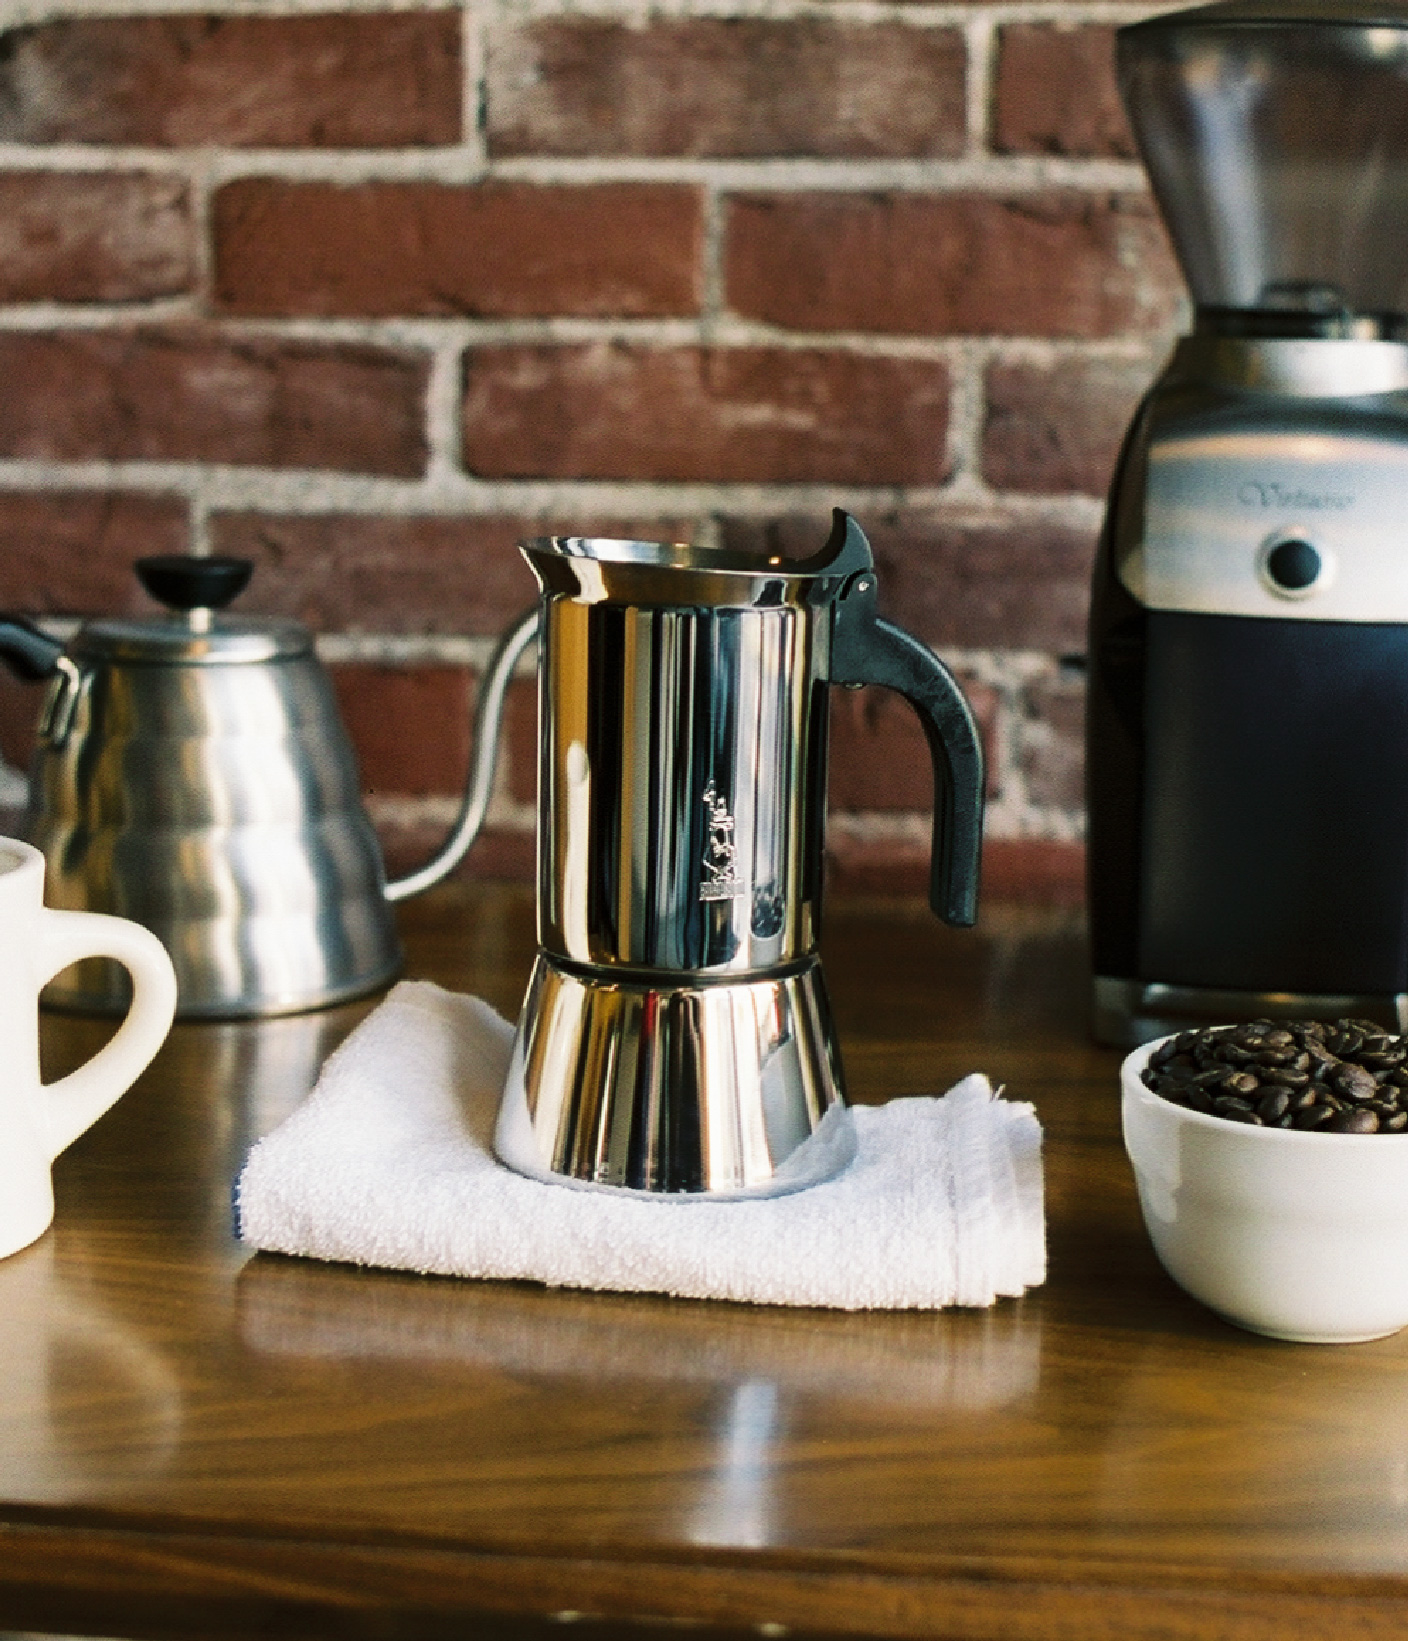 How to Brew in a Moka Pot